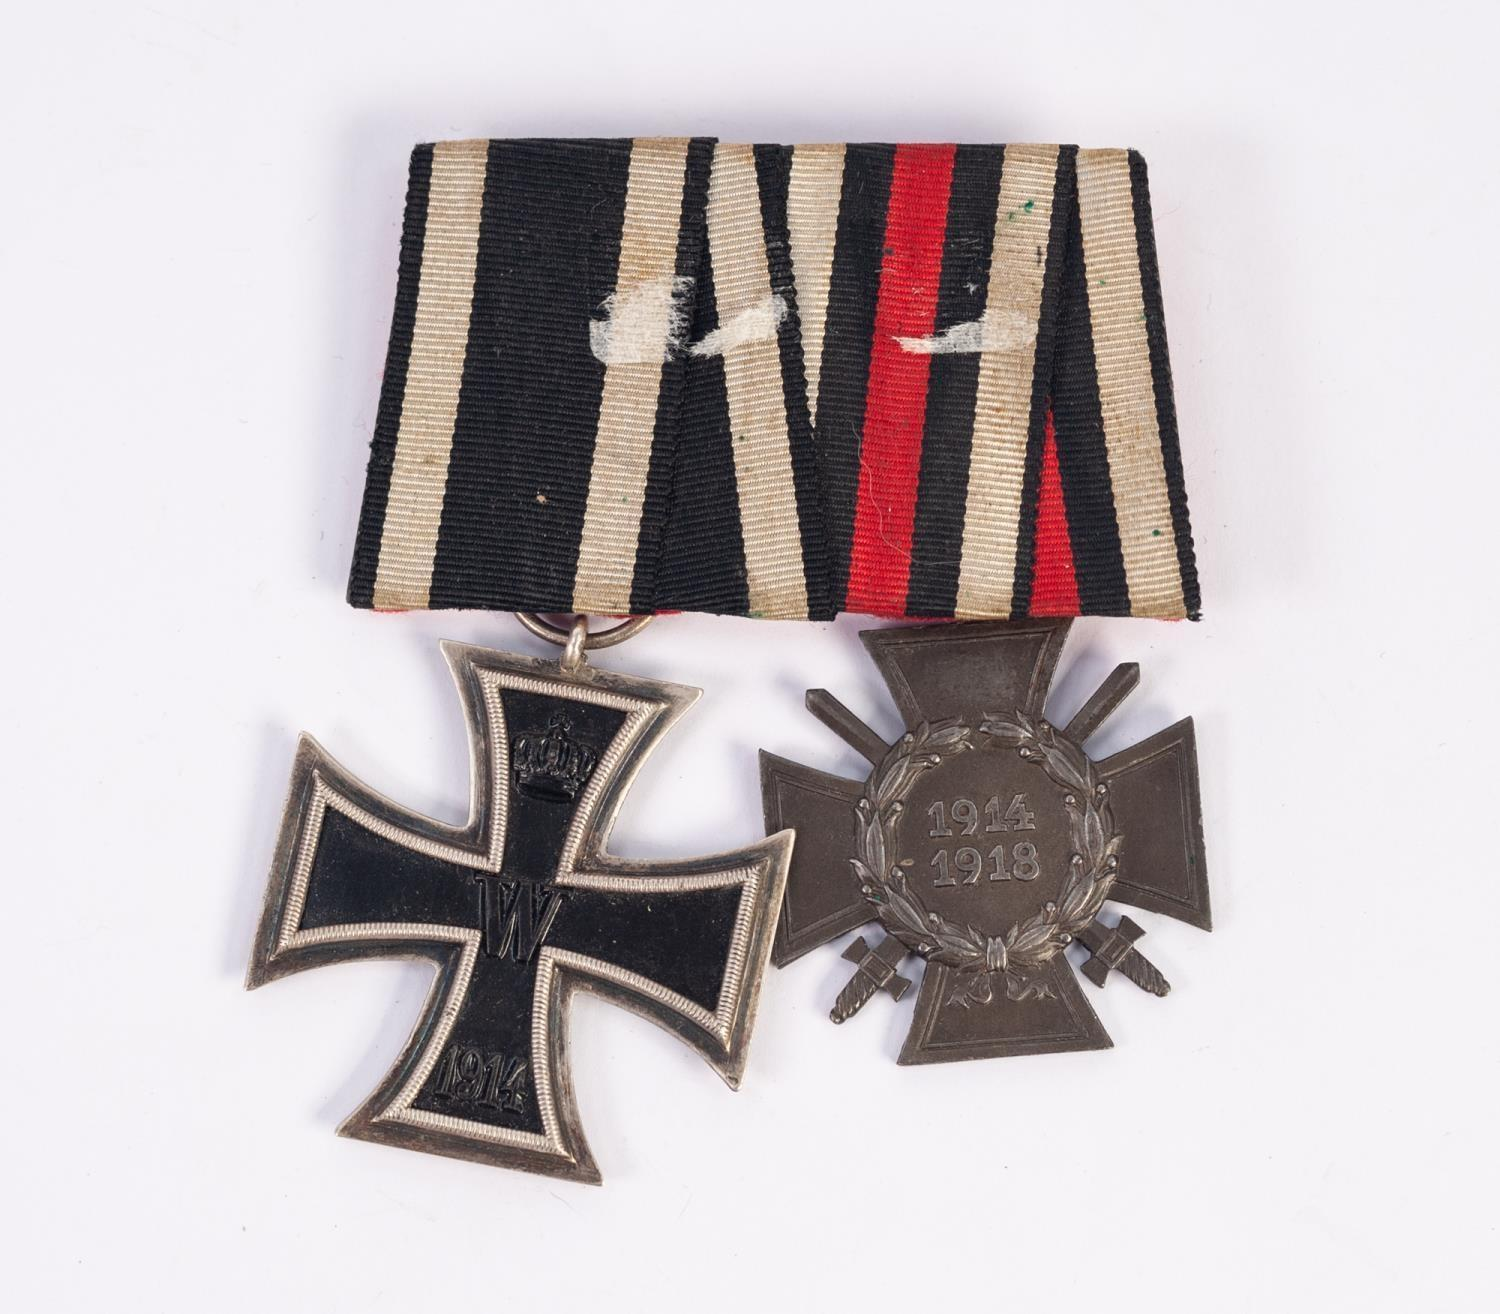 Lot 88 - GERMAN WORLD WAR I IRON CROSS SECOND CLASS 1914-18 with ribbon and a WAR MERIT CROSS 1914-18 with